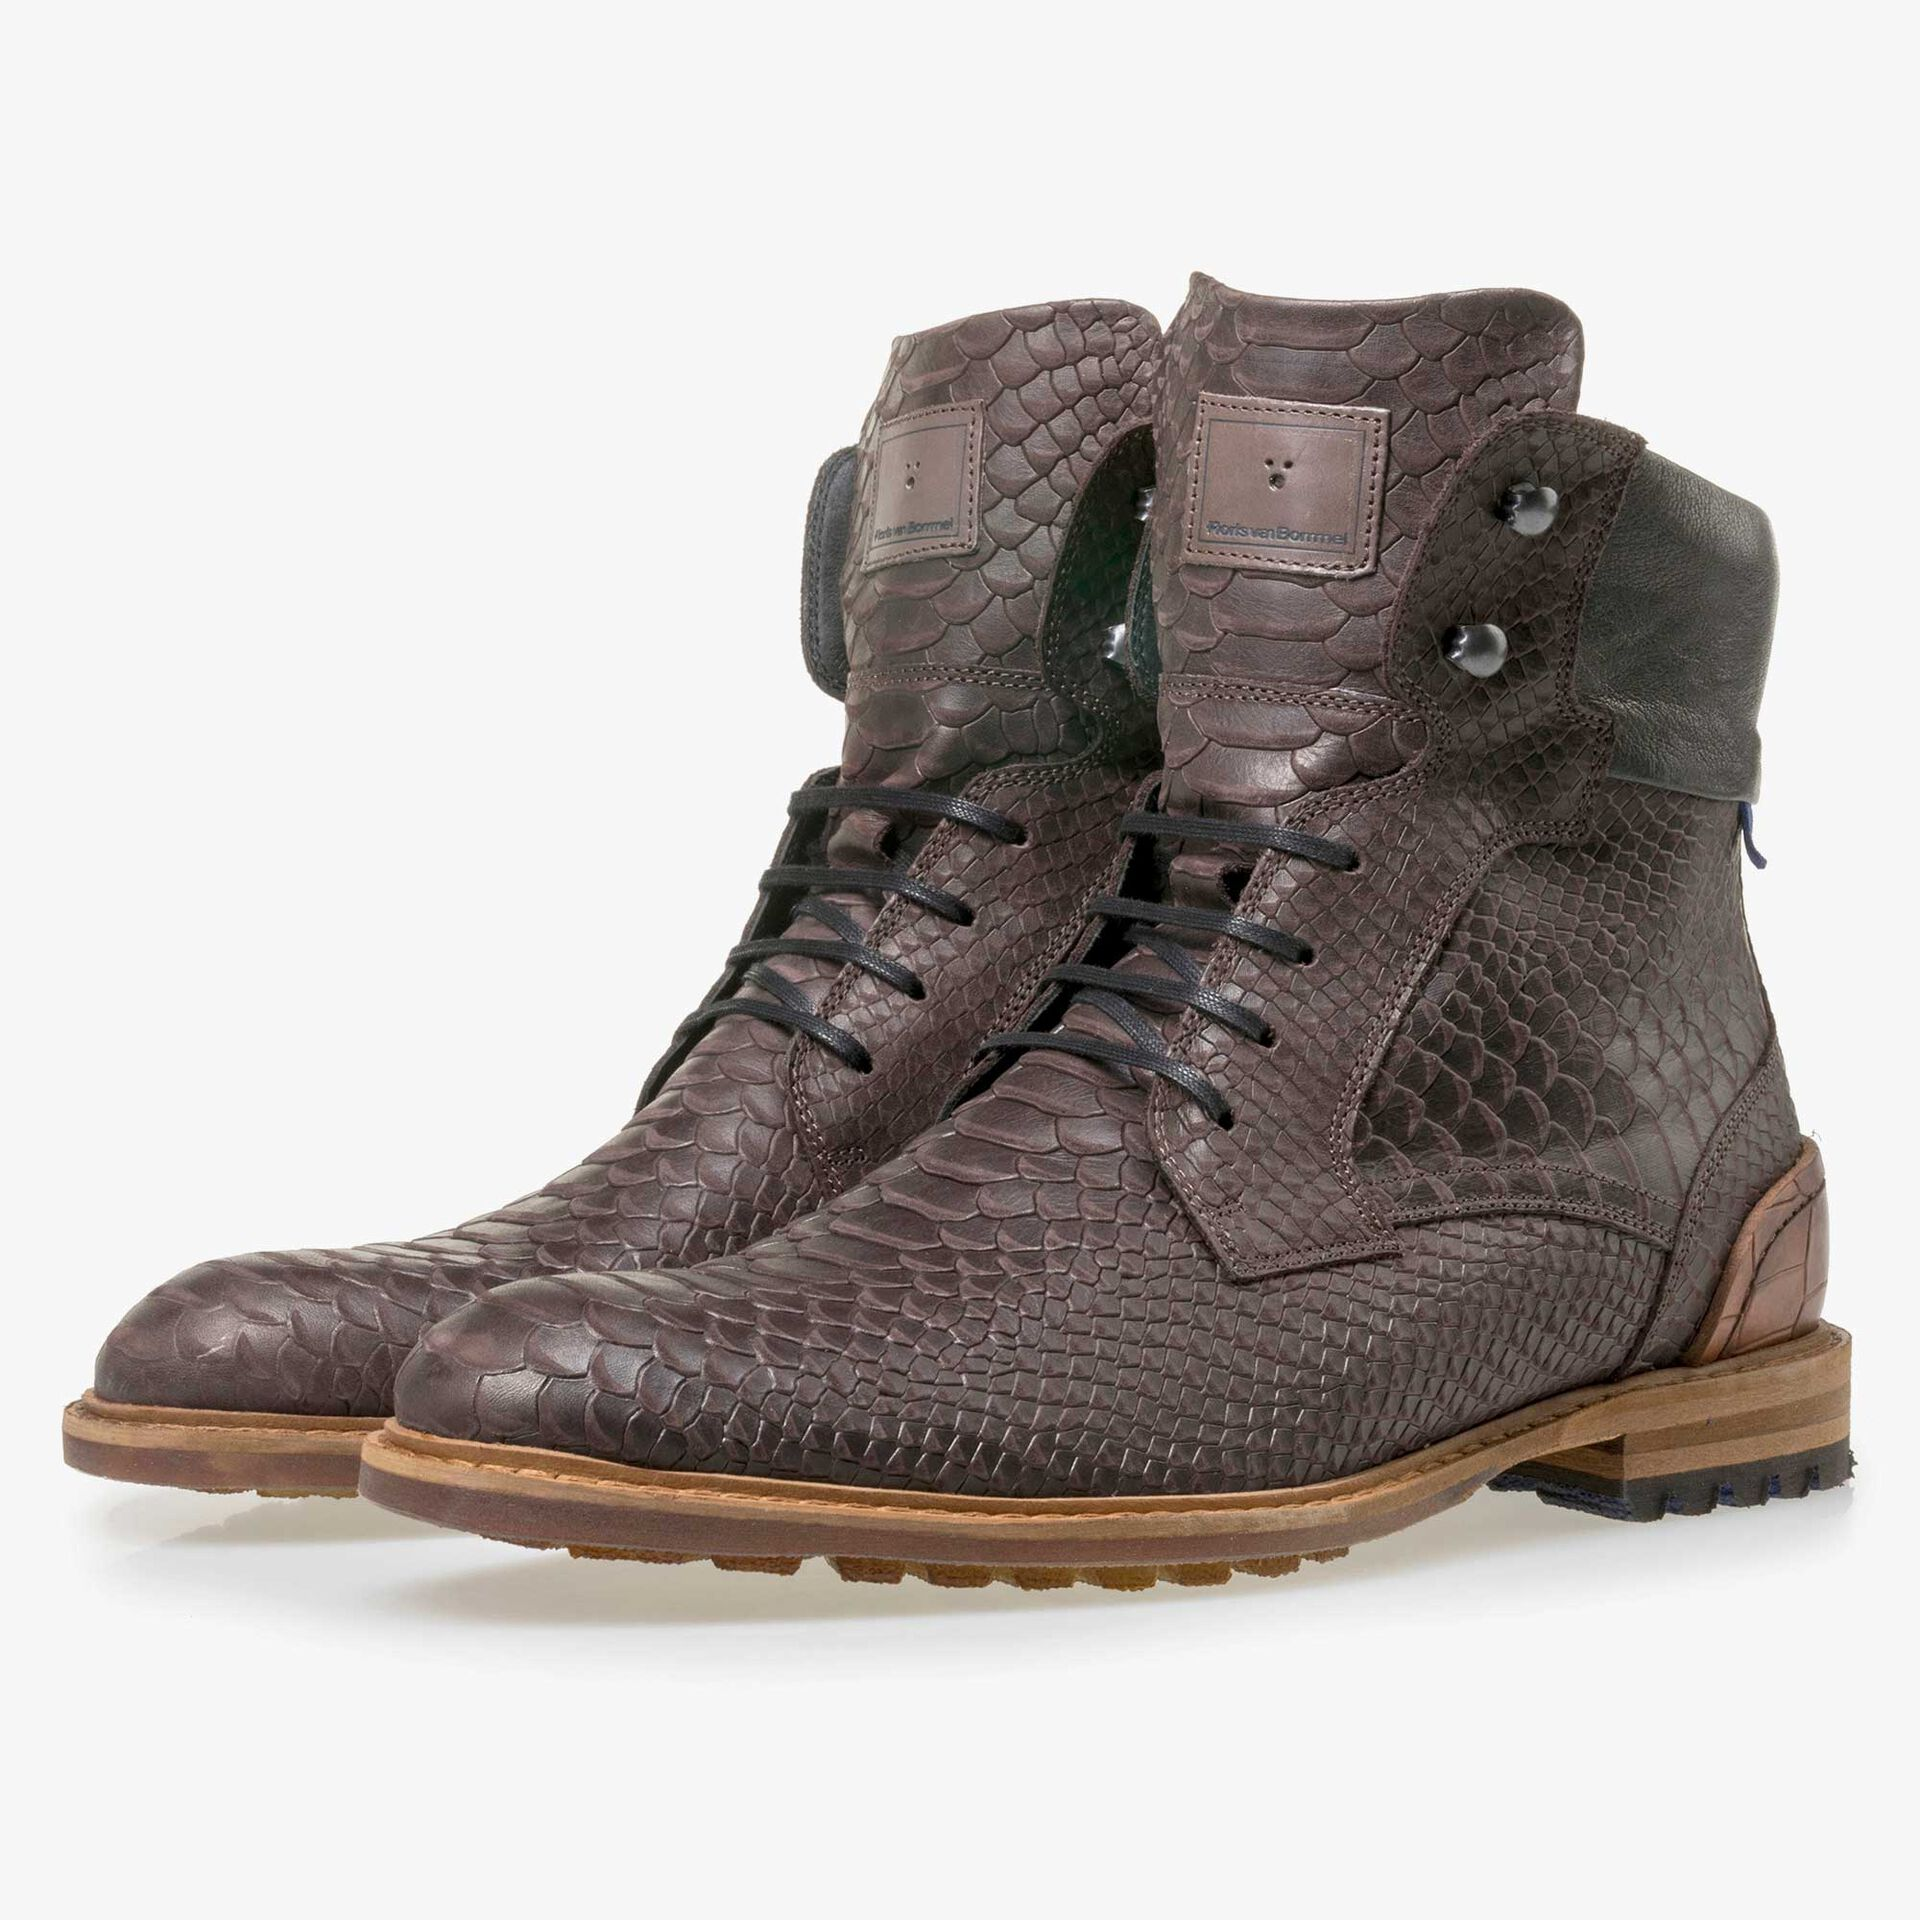 Floris van Bommel men's high, brown leather lace boot finished with a snake print